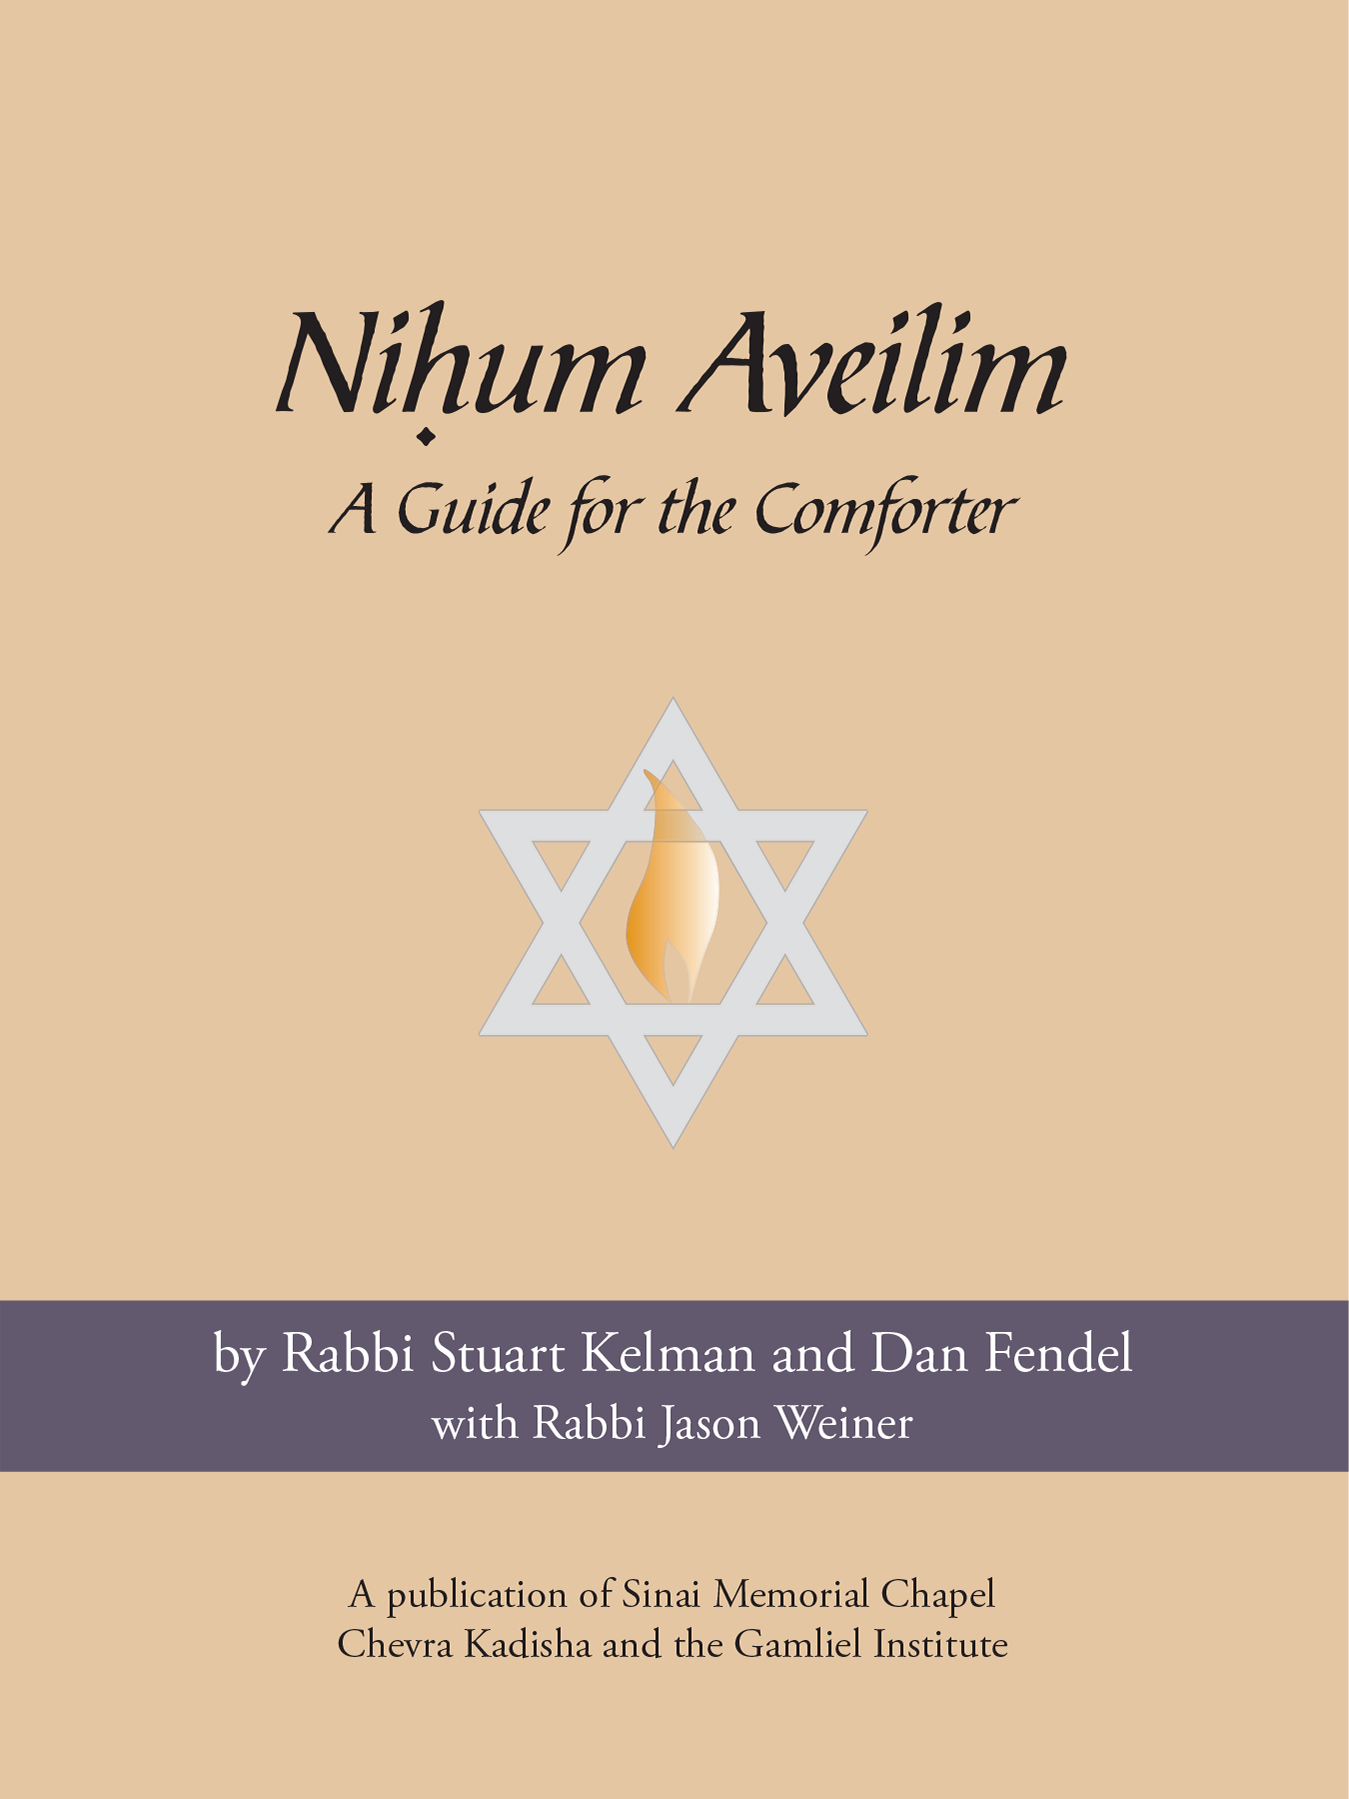 Nihum Aveilim: A Guide for the Comforter